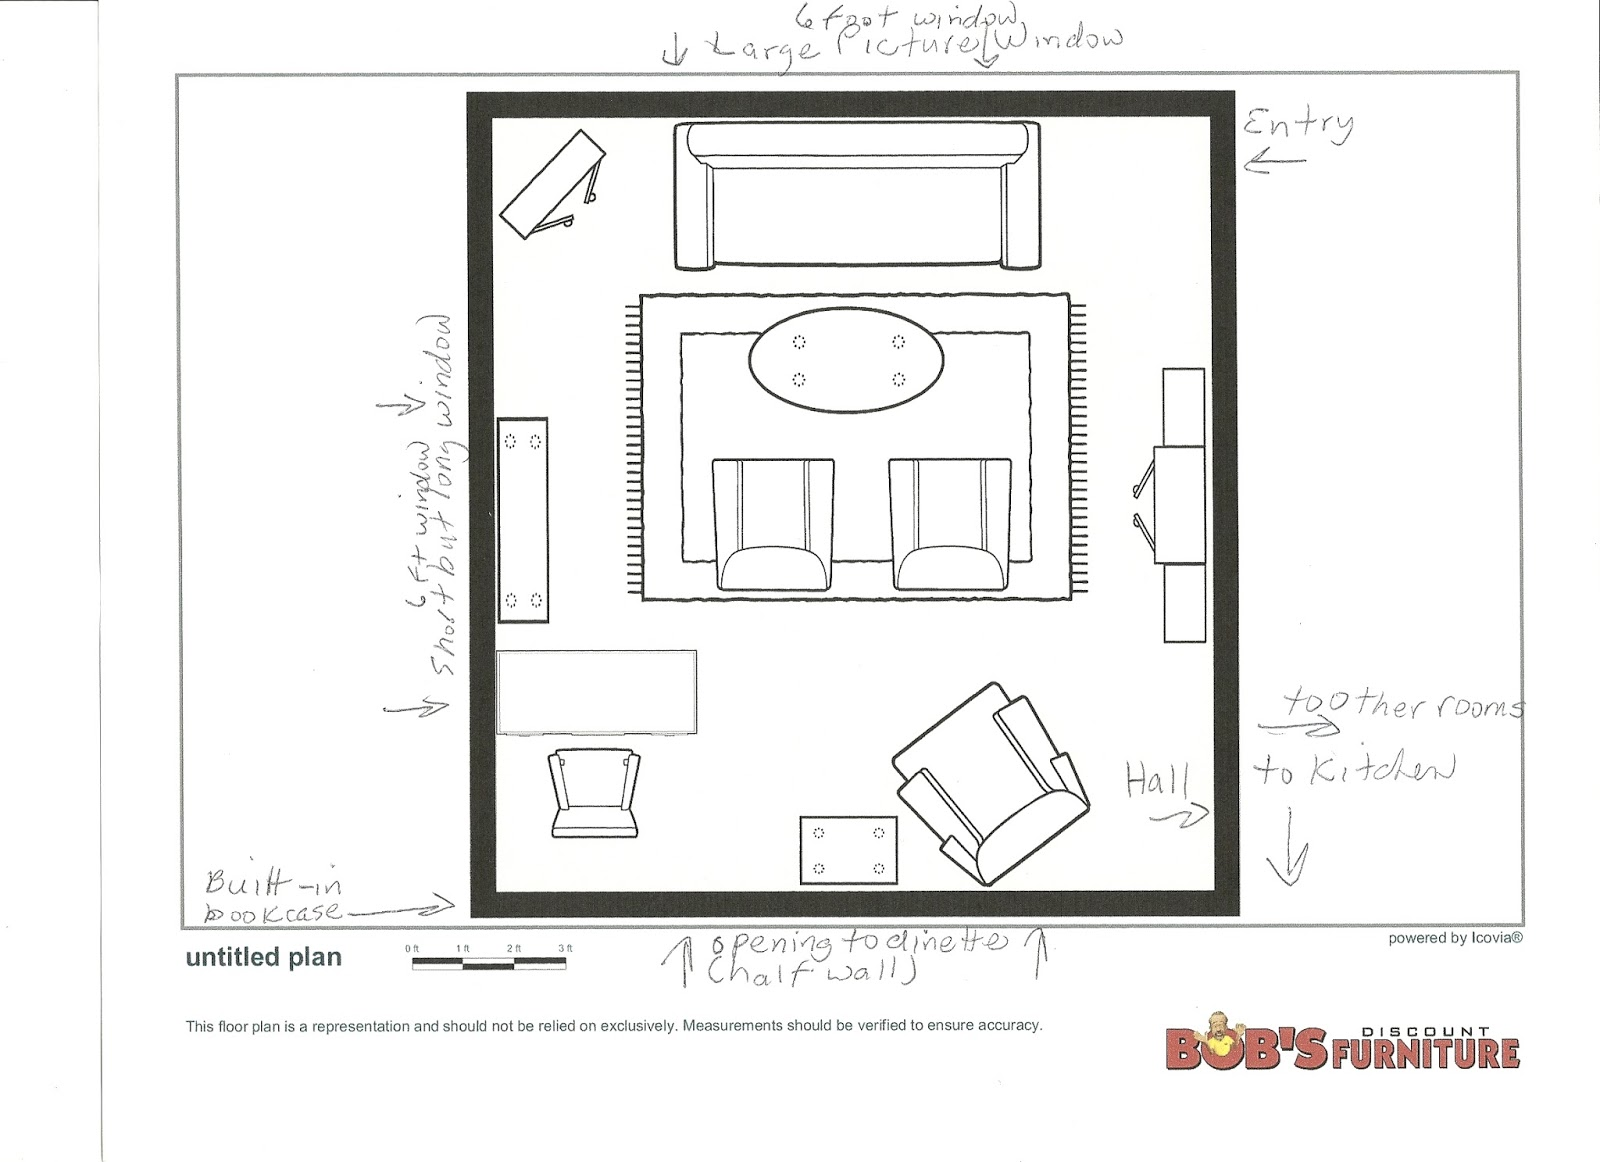 Maison newton redoing the living room 2 the floor plan for Living room furniture plan